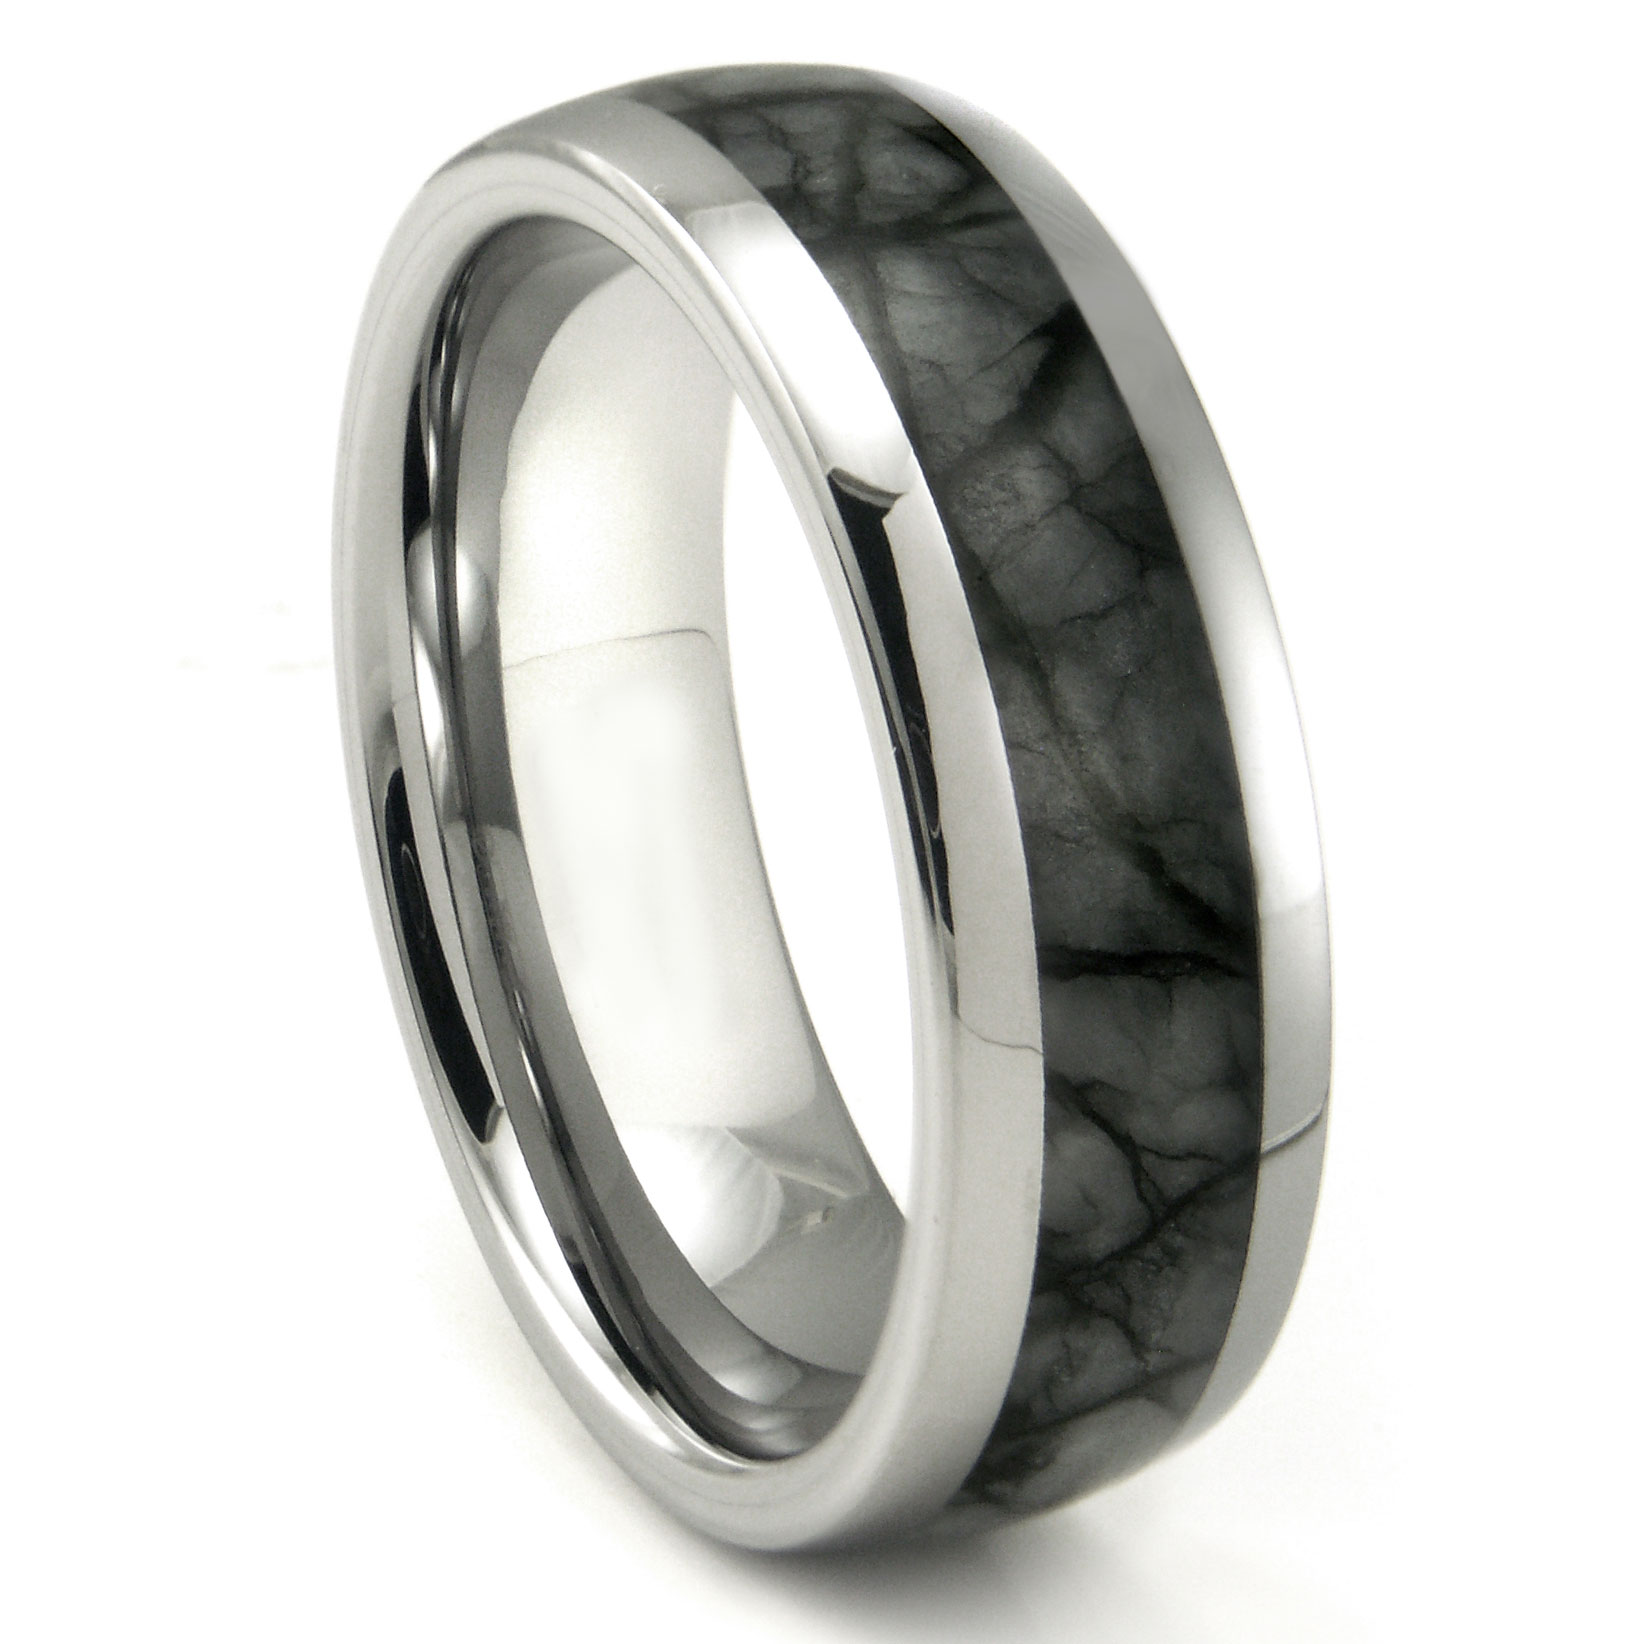 duo carbide amazon brown ring b band dome gold inside mens bands fit rose rings will wedding king tungsten com comfort